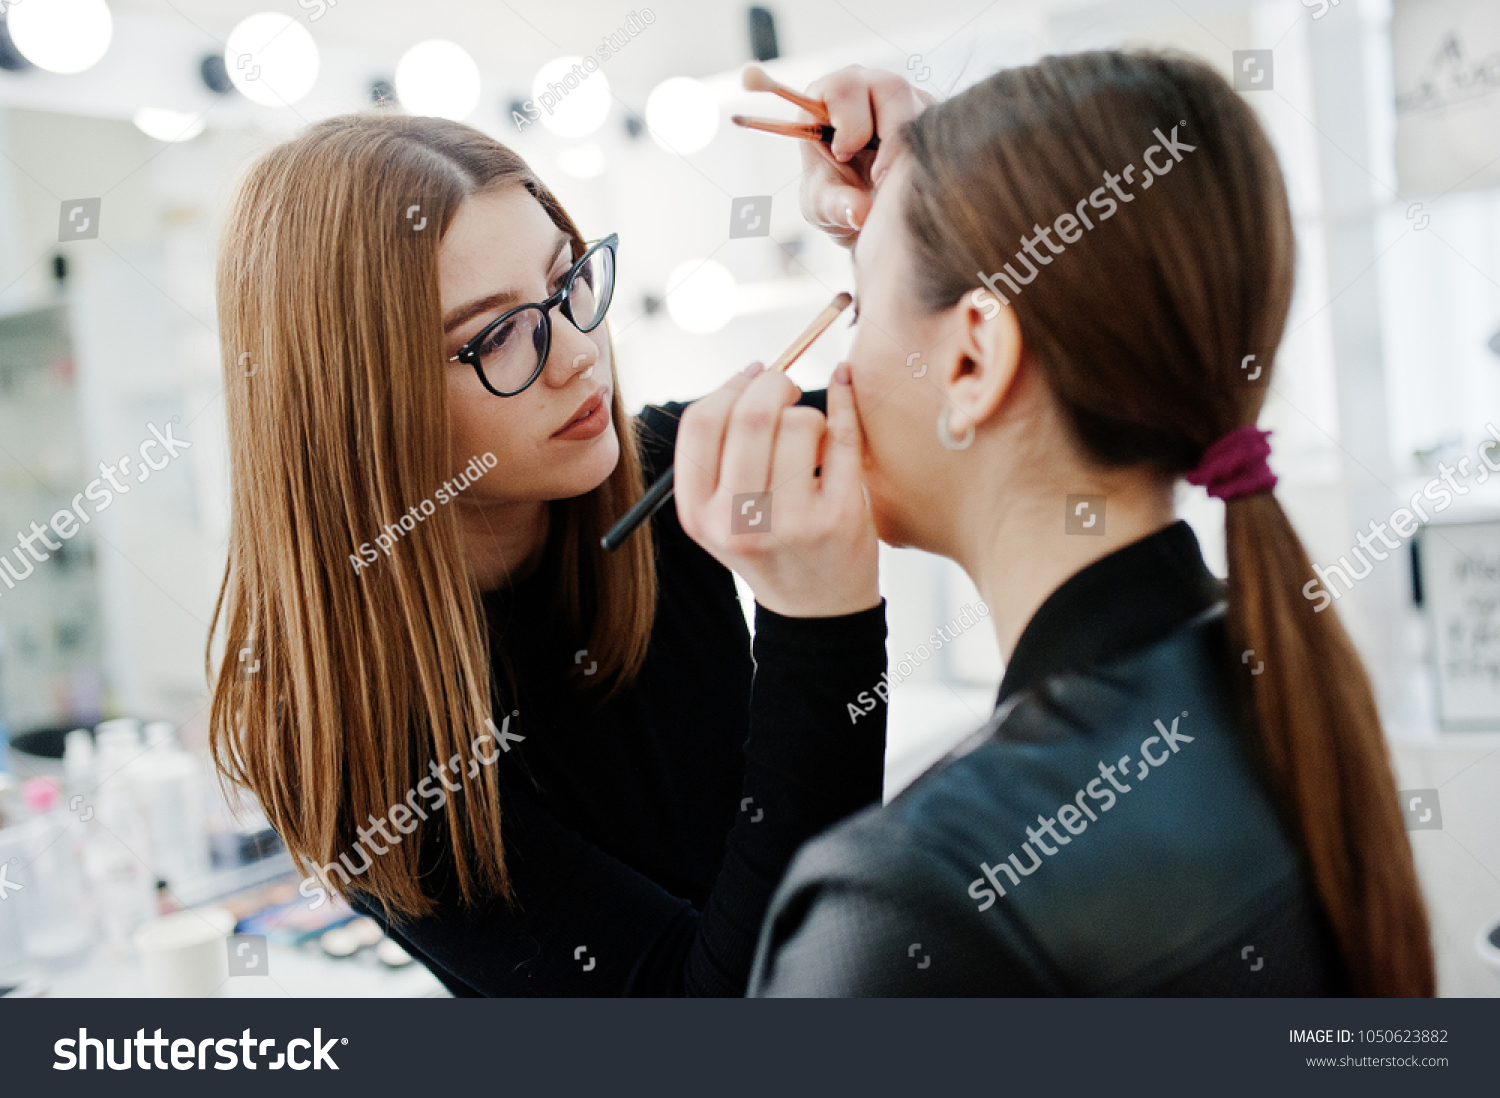 Make up artist work in her beauty visage studio salon. Woman applying by professional make up master. Beauty club concept. #1050623882